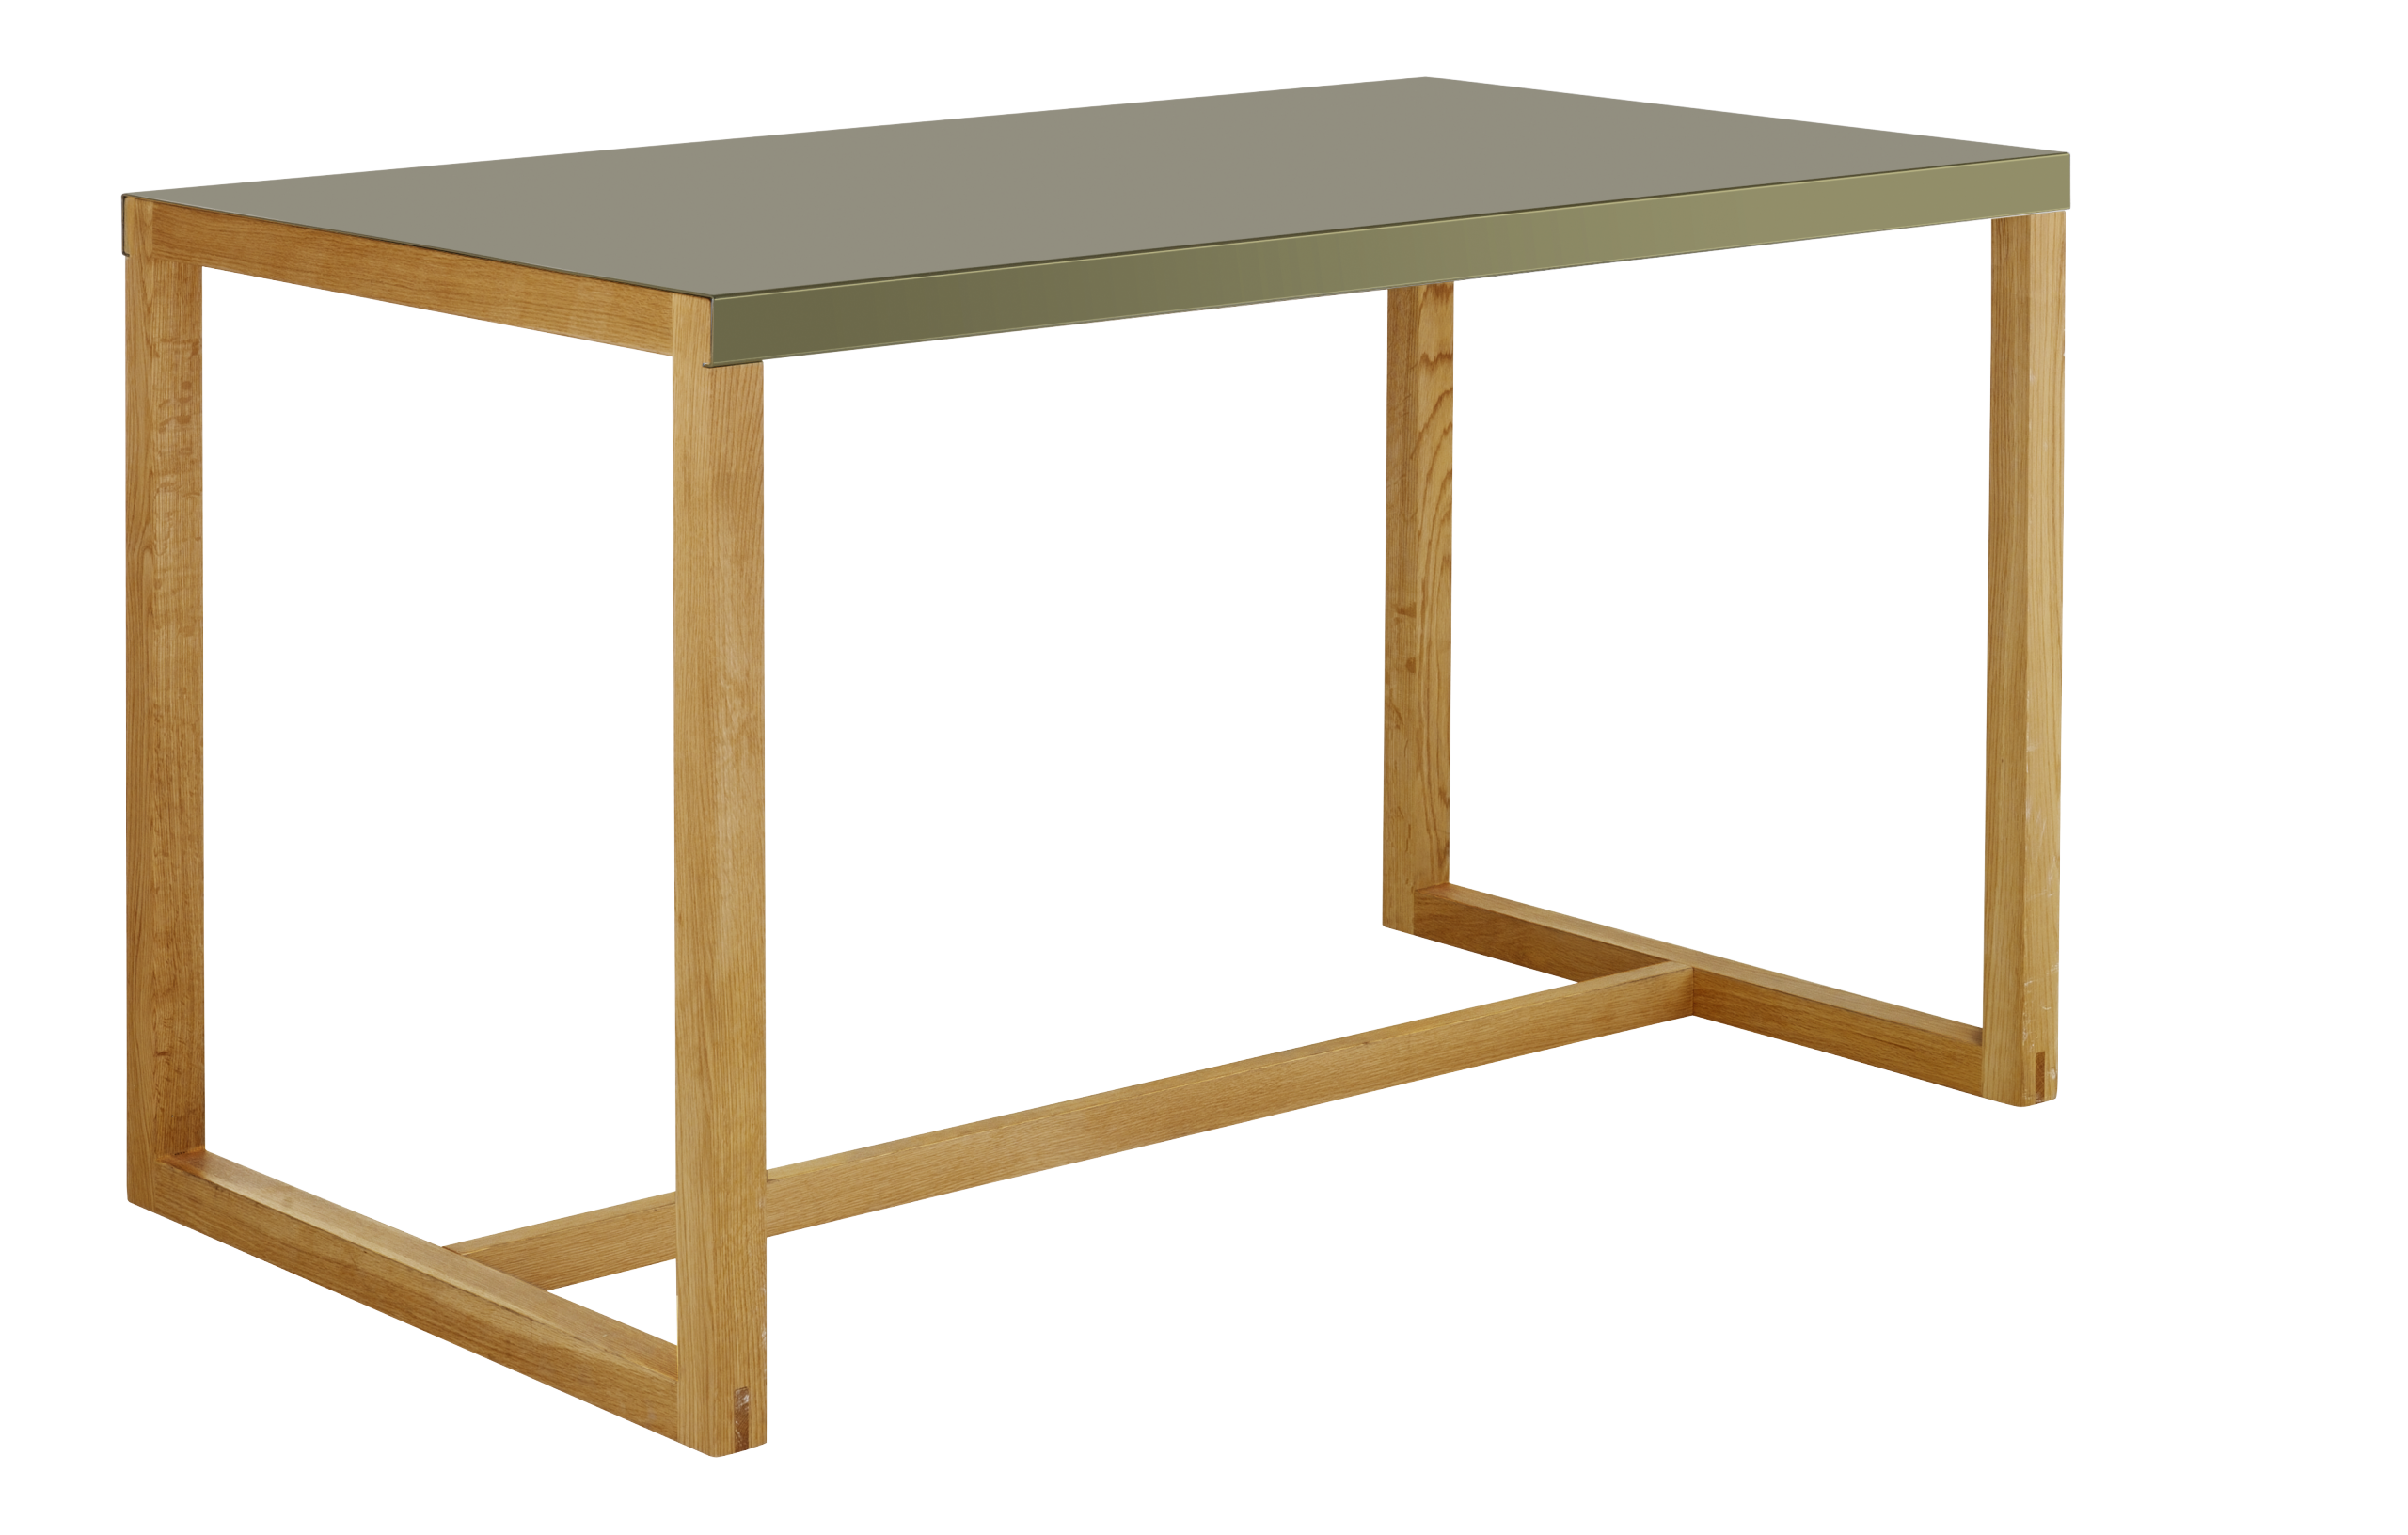 Discover kilo dining room tables olive green wood metal at habitat a of furniture and design - Table console extensible habitat ...